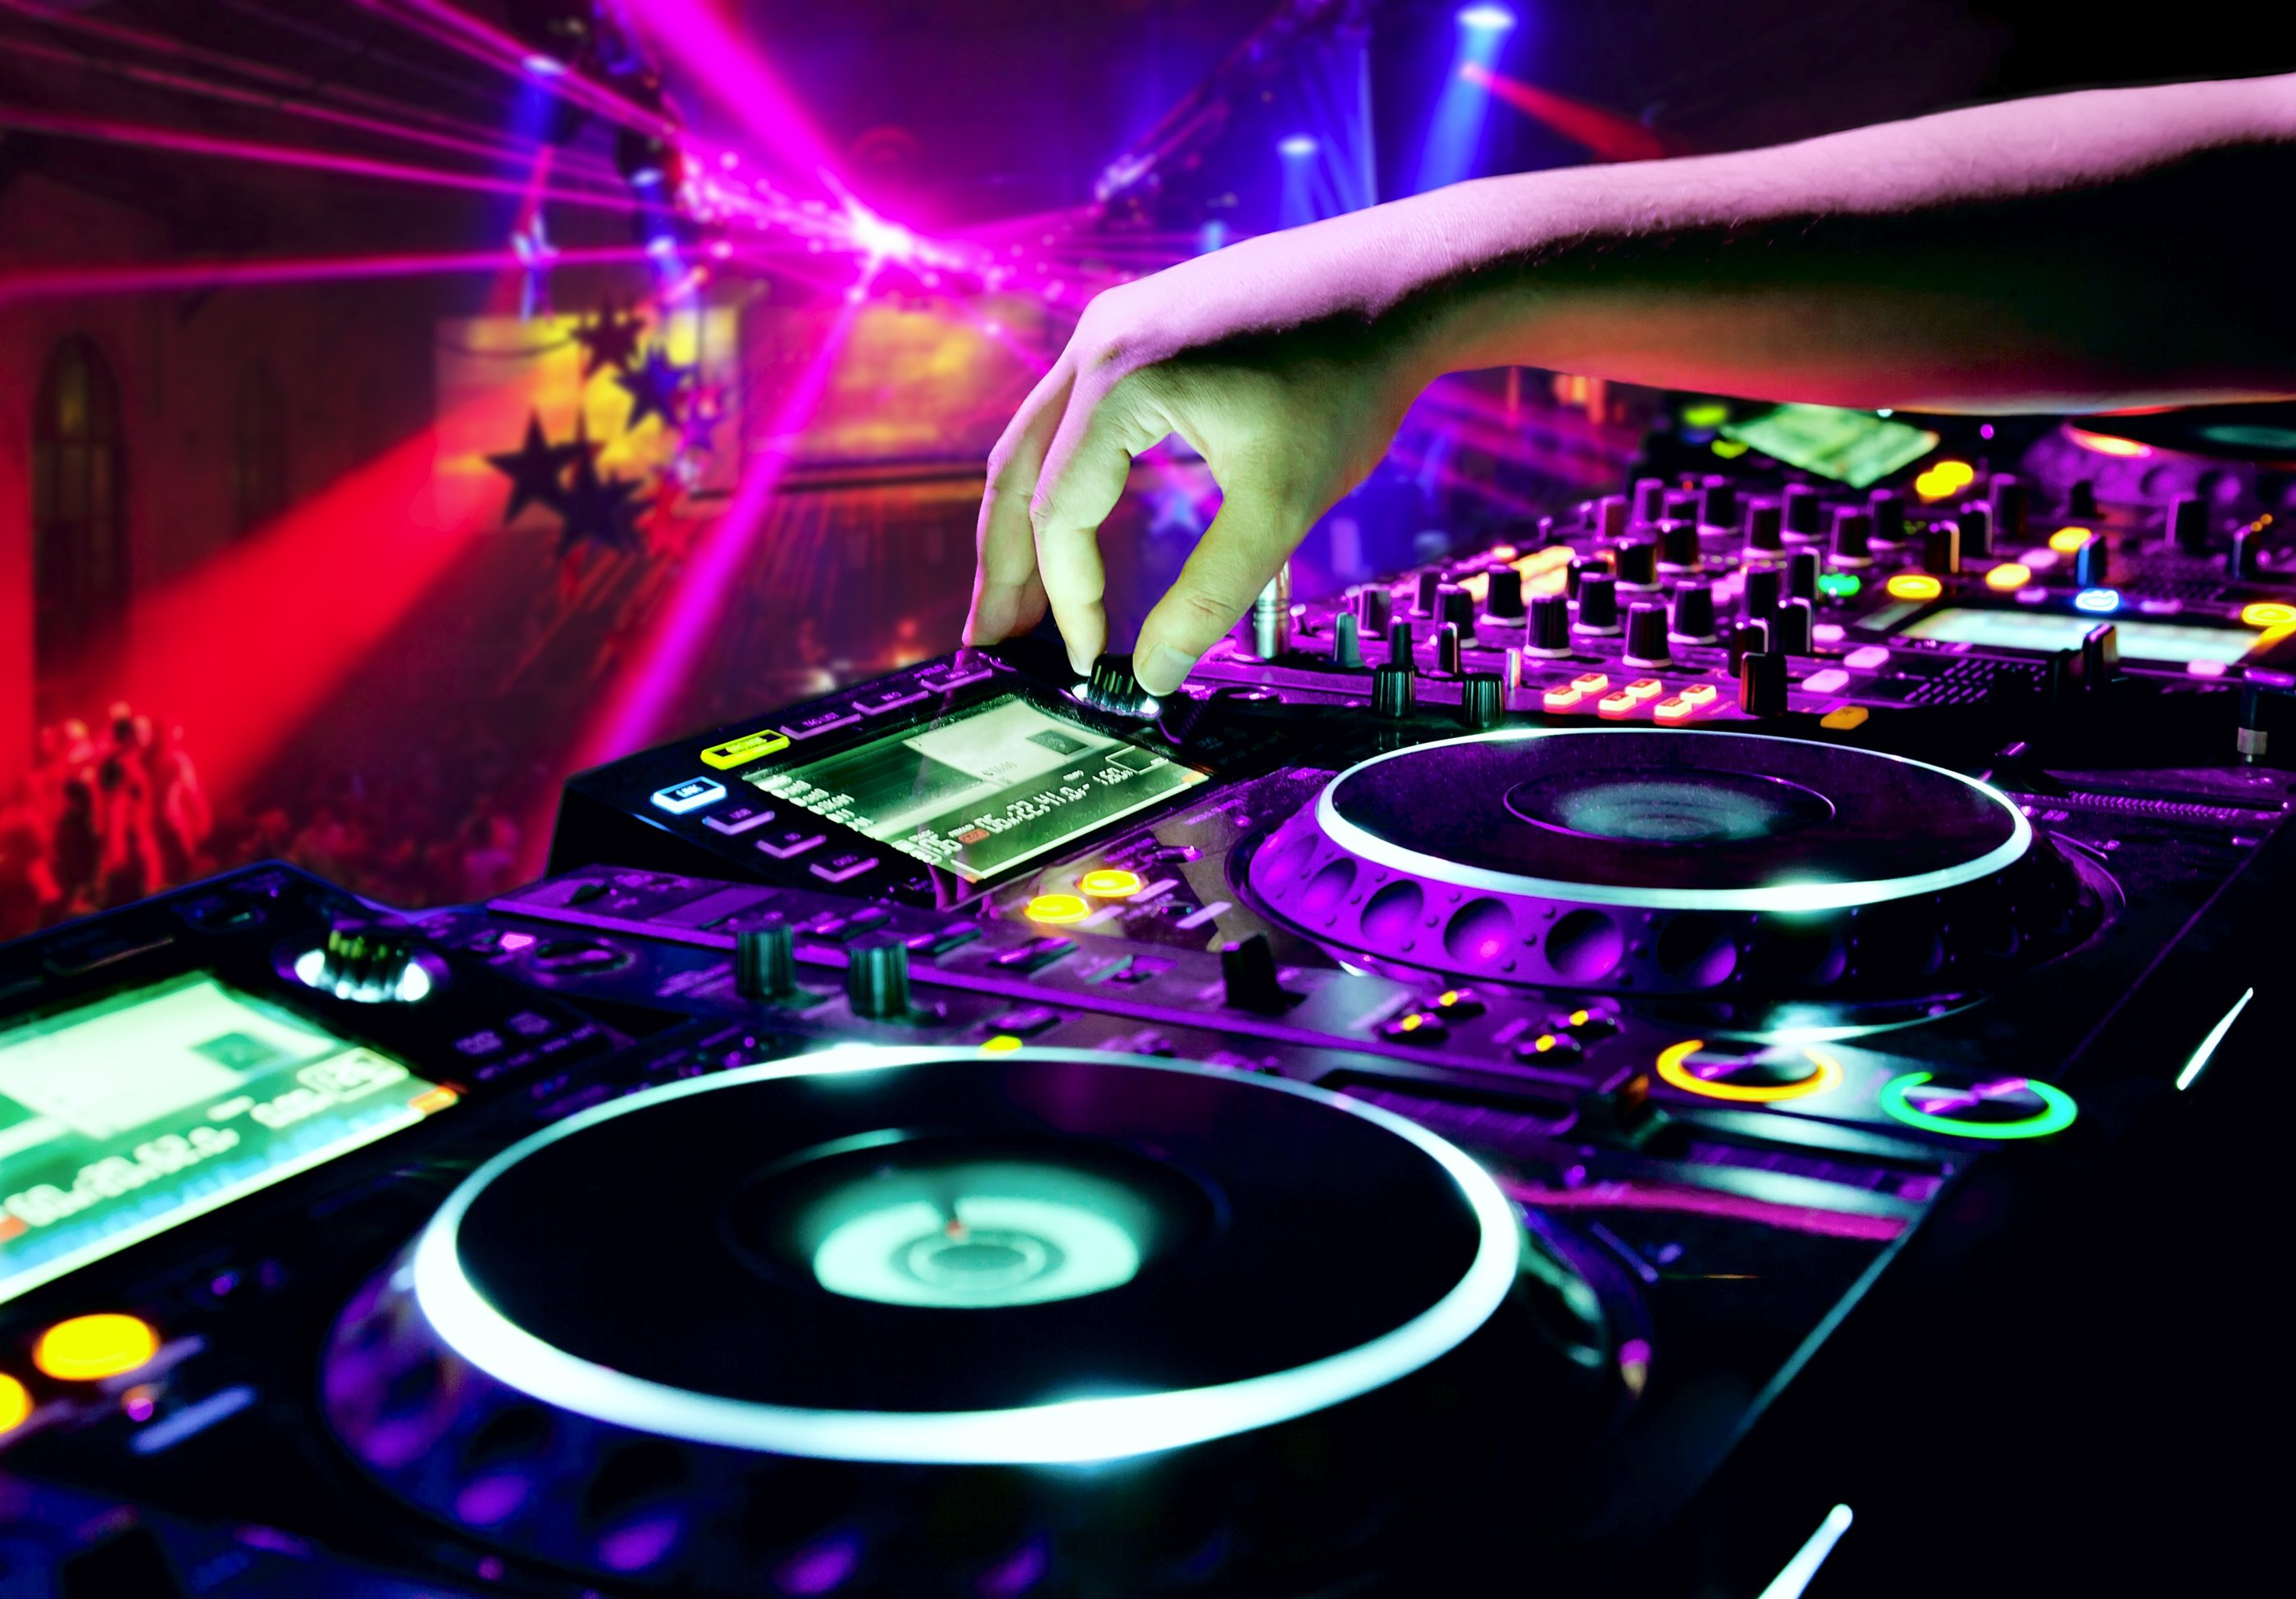 Disco dance music club wallpaper 2800x1950 458694 for Lounge house music